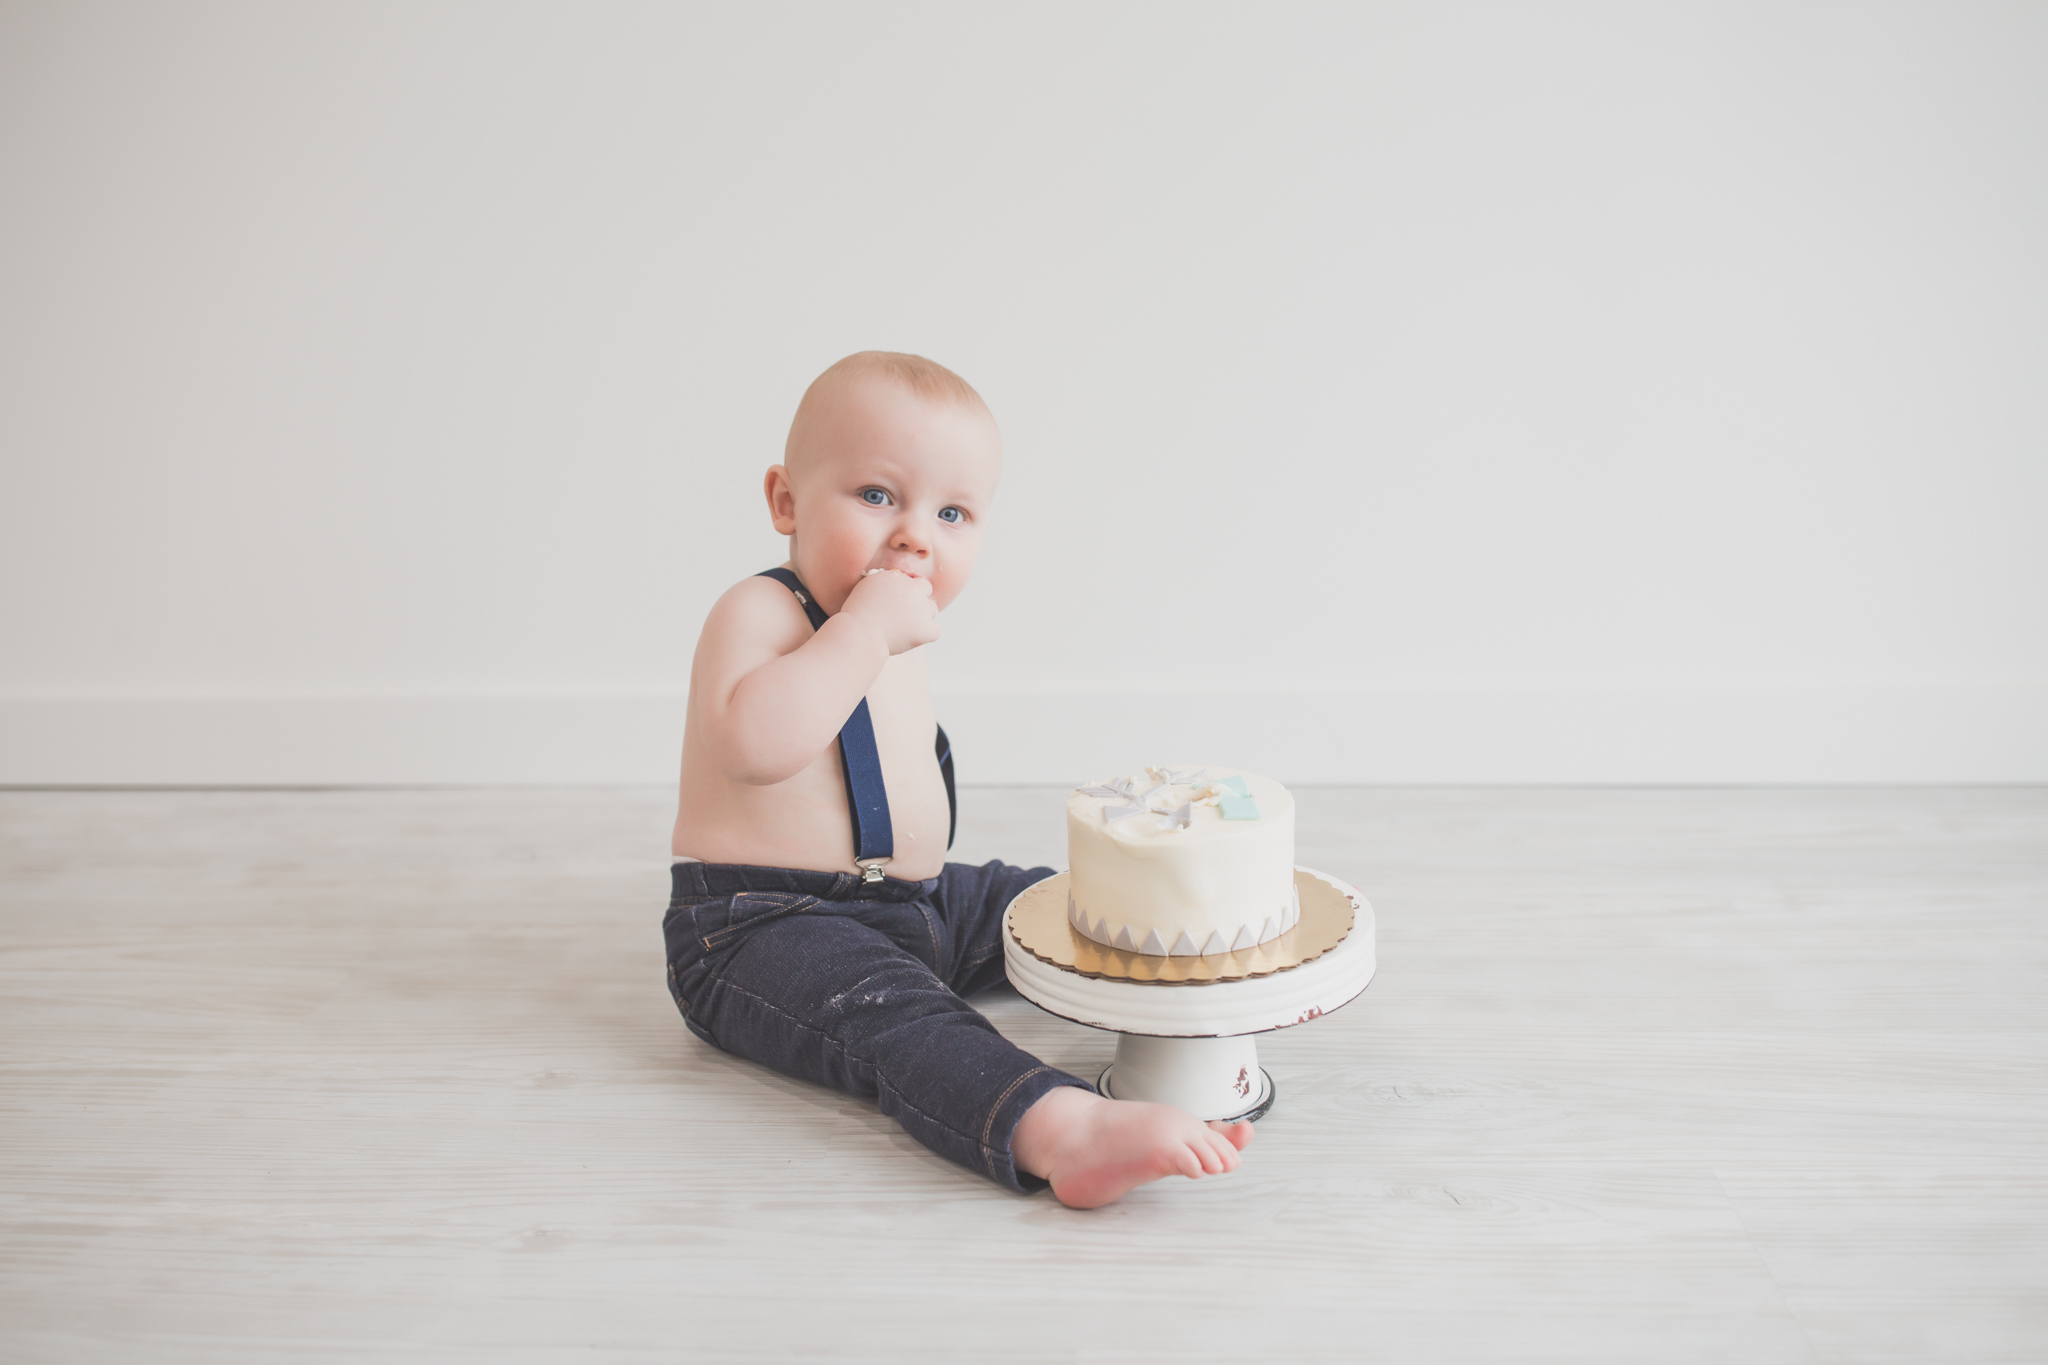 Cade 1 Year Old Cake Smash Milestone Session Cara Peterson Photography Rockford IL -26.jpg